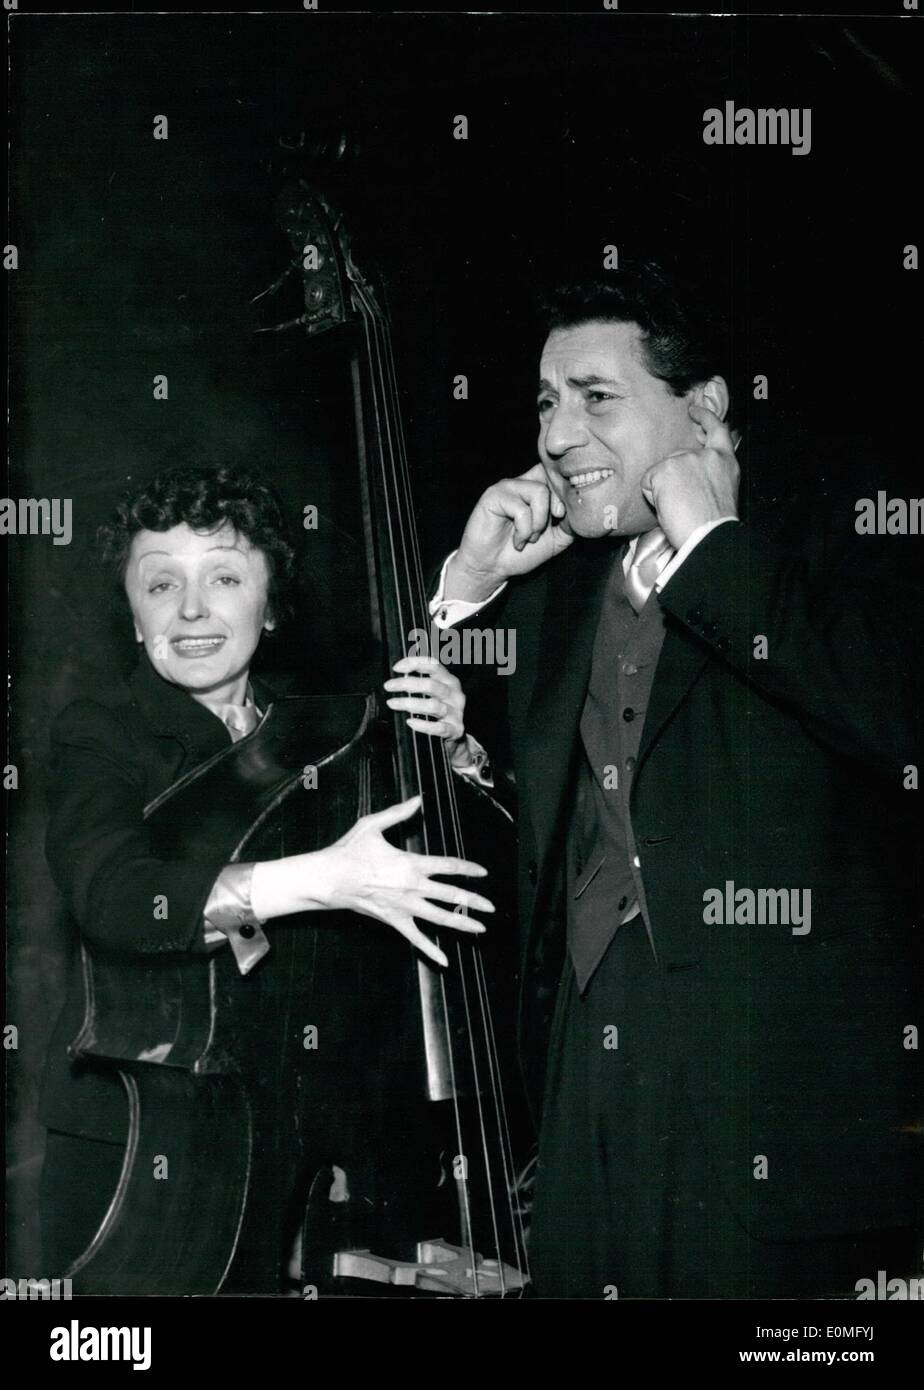 Jan. 01, 1955 - Not So Loud, Edith!: Jacques Pilis, famous singer, and his famous wife, Edith Piaff, seem to have Stock Photo